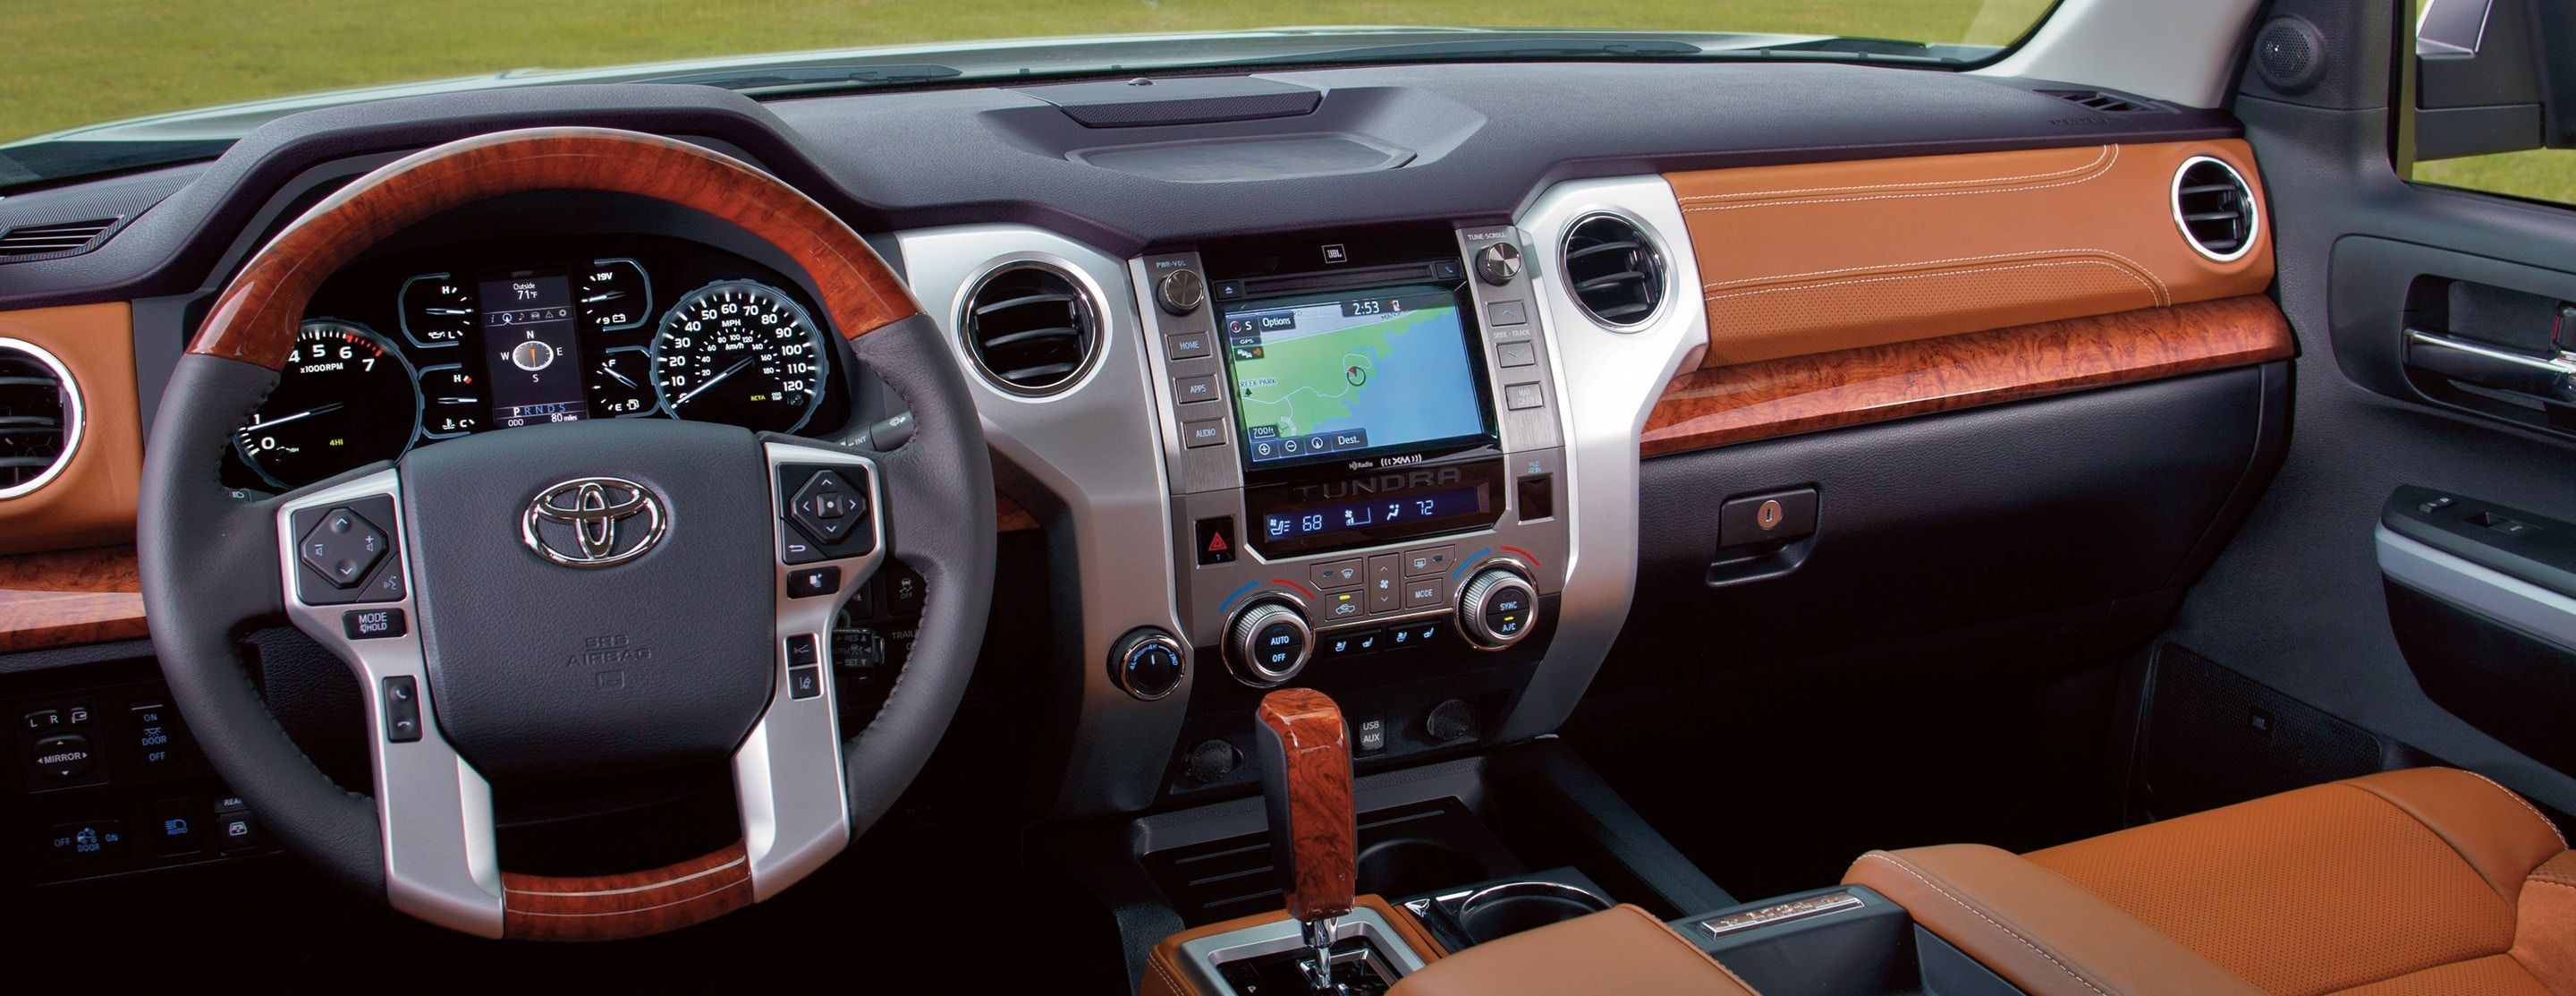 Stylish Accents in the Tundra